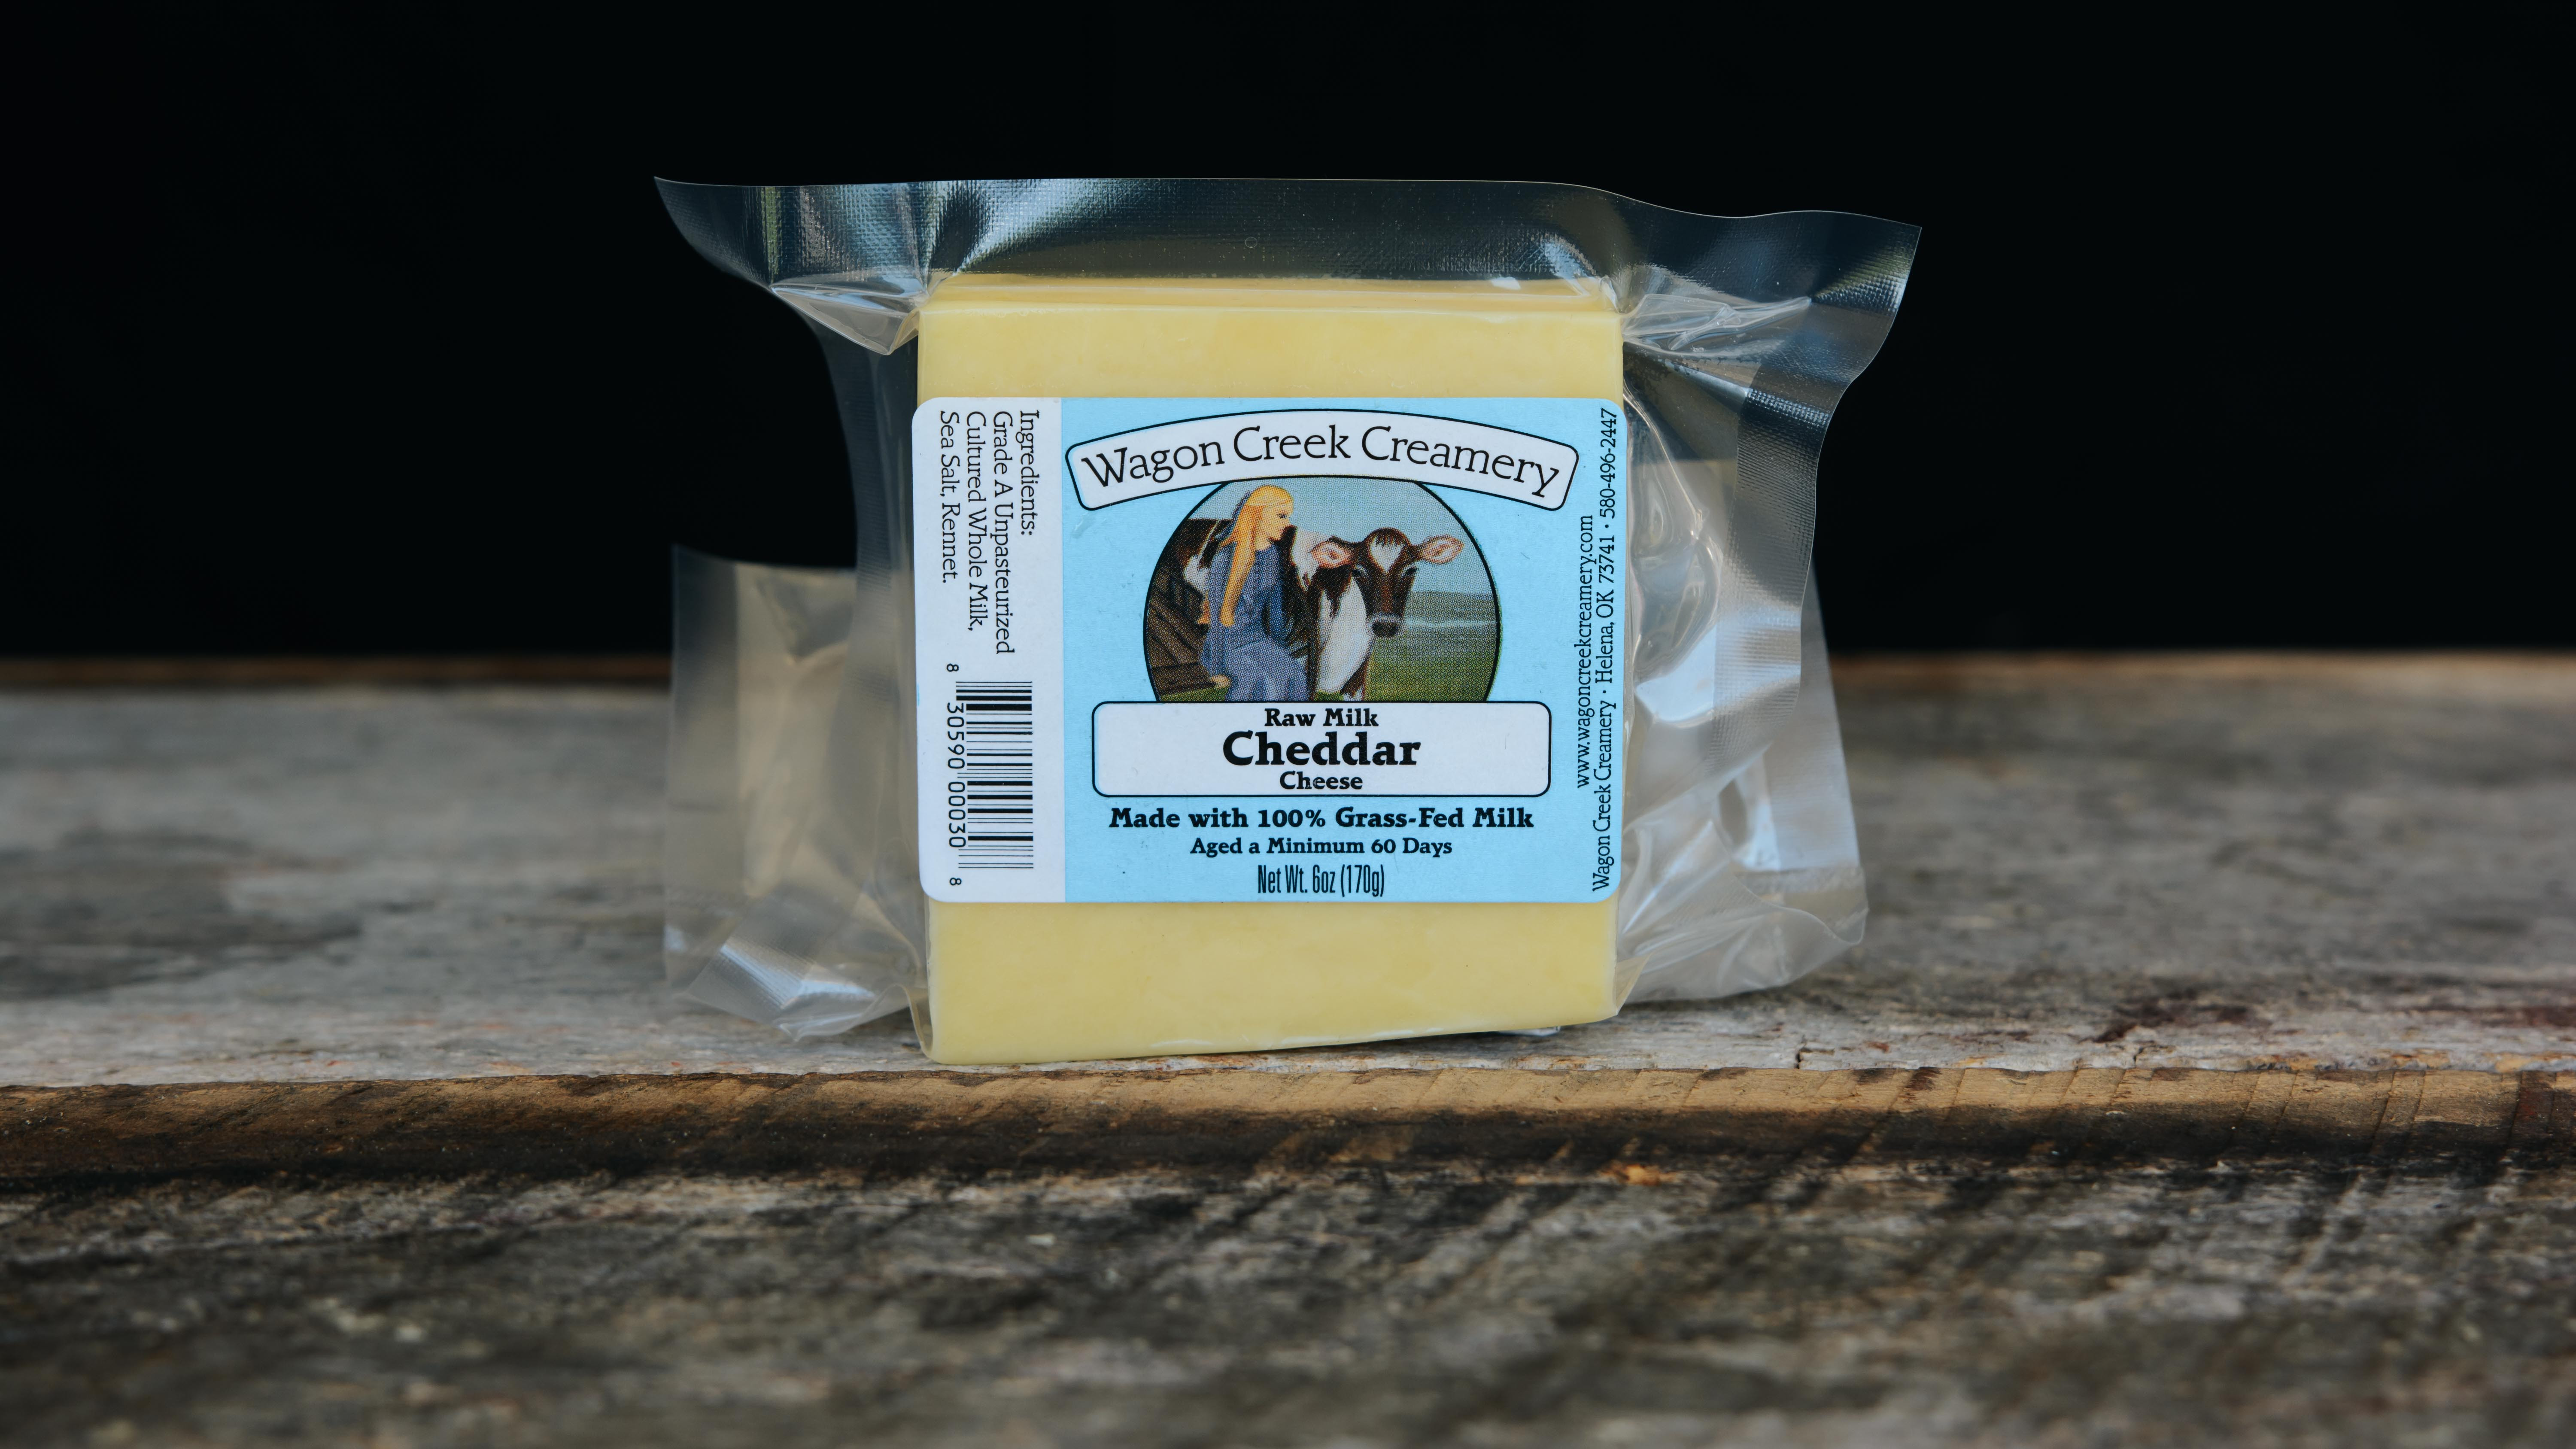 Grass-fed Cheddar Cheese